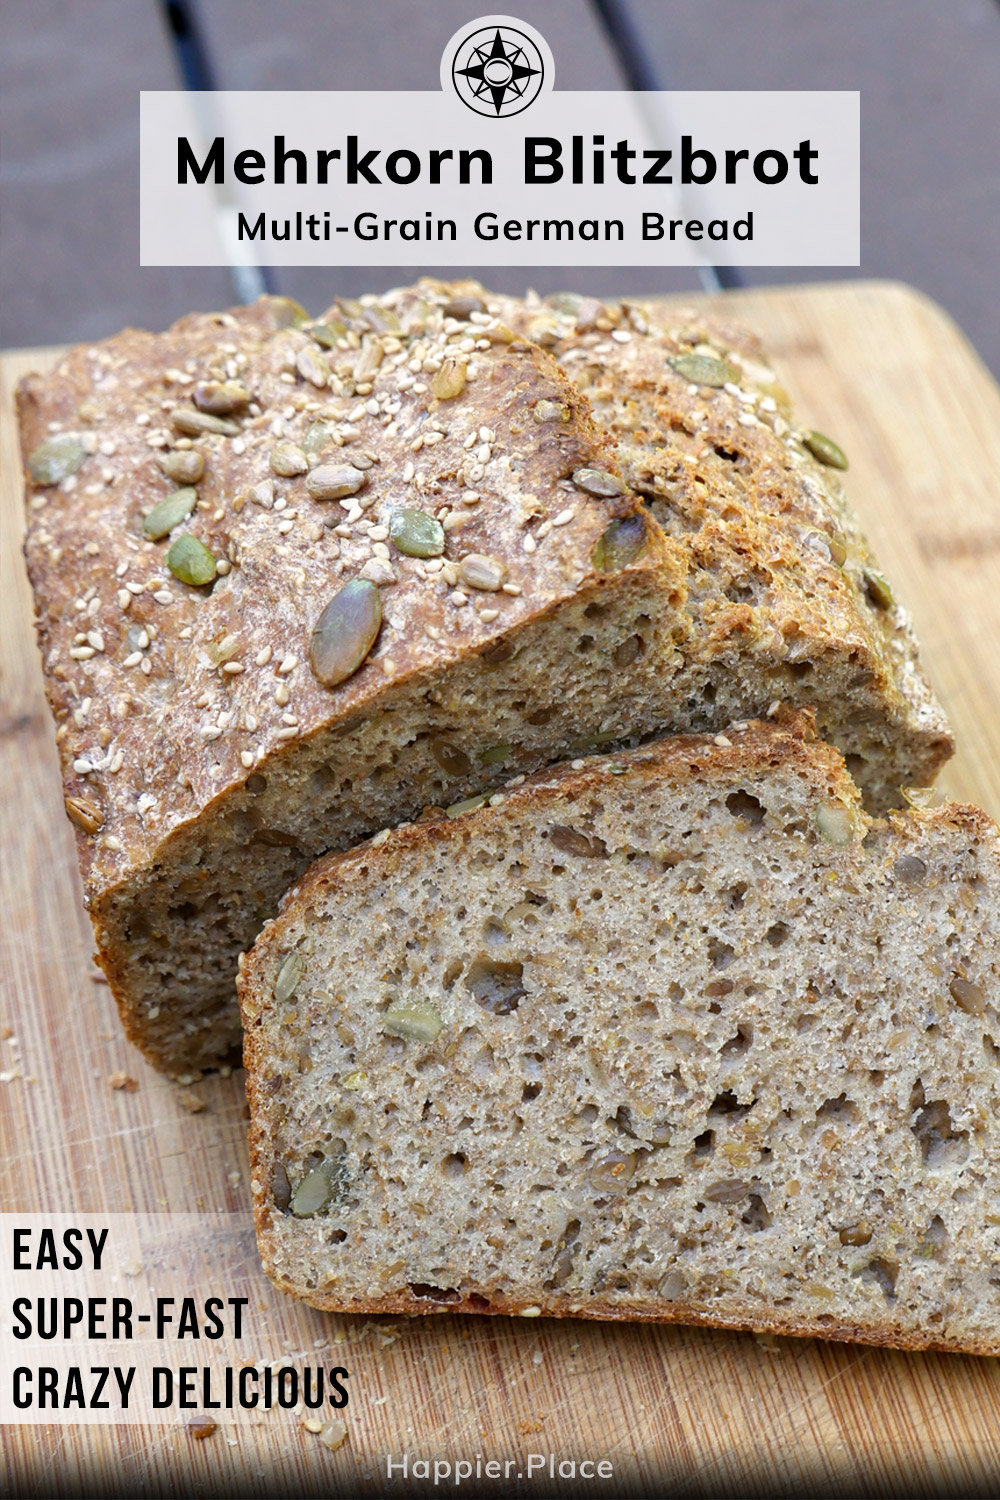 Bake at home Mehrkorn Blitzbrot, easy fast delicious multi-grain, multi-seed, wholewheat German bread from Happier Place